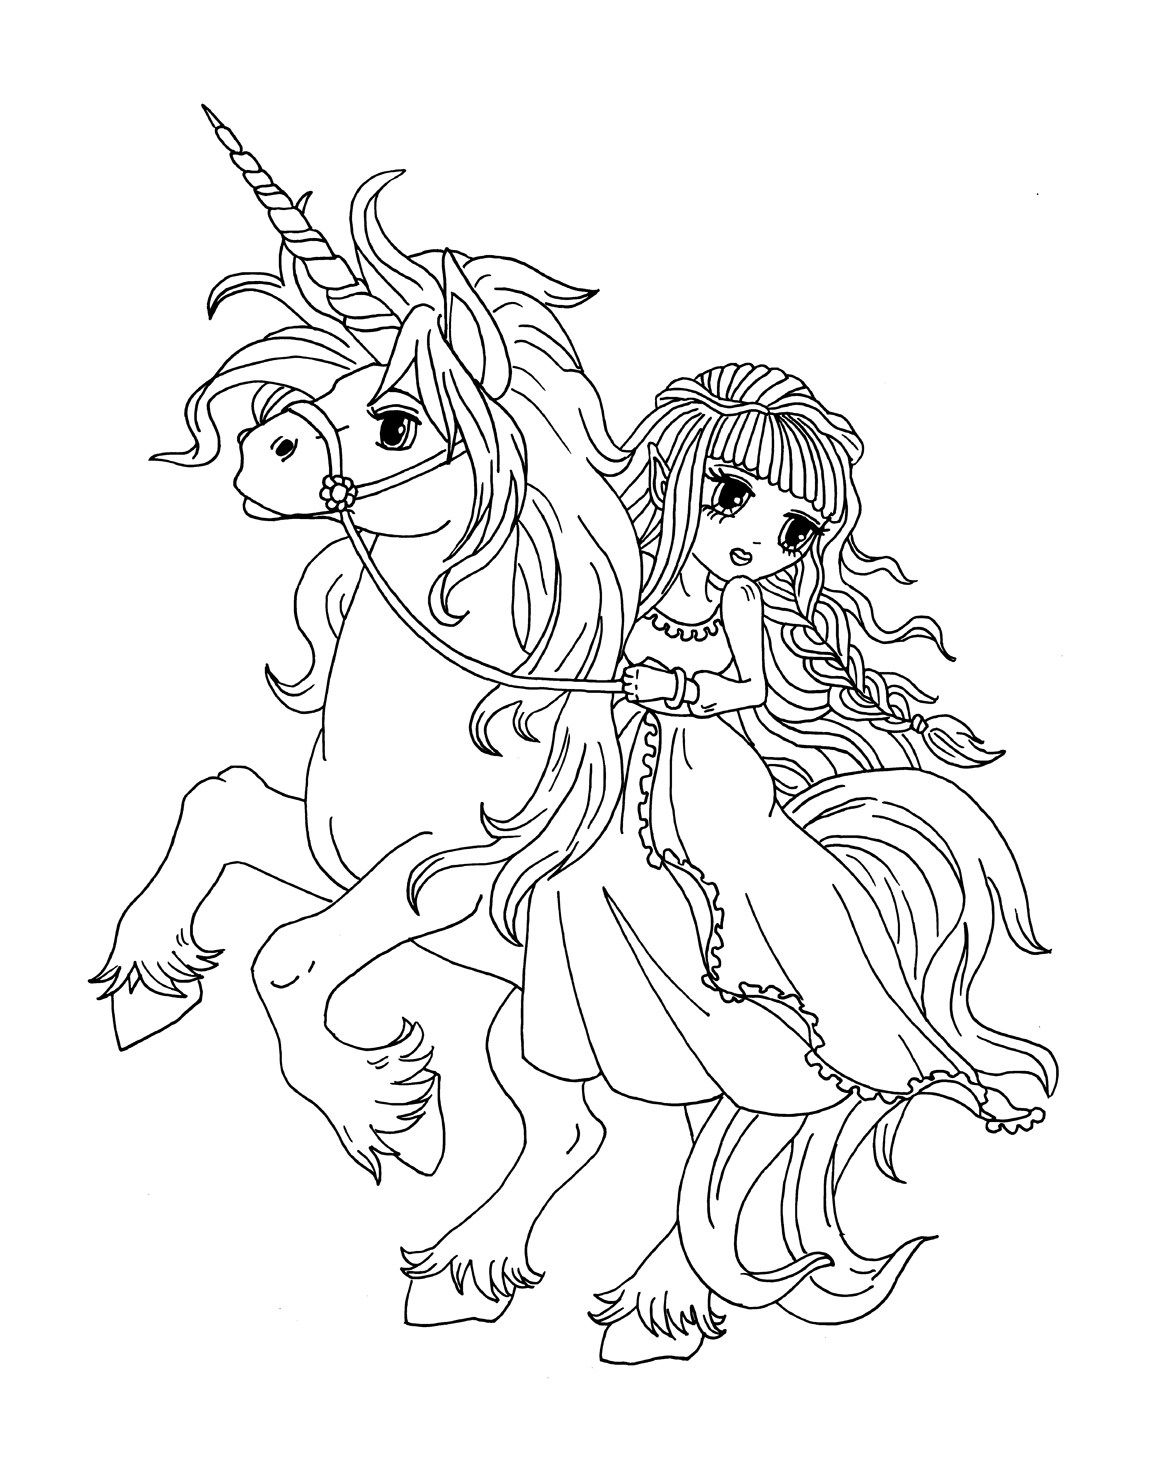 Pin auf Adult coloring pages